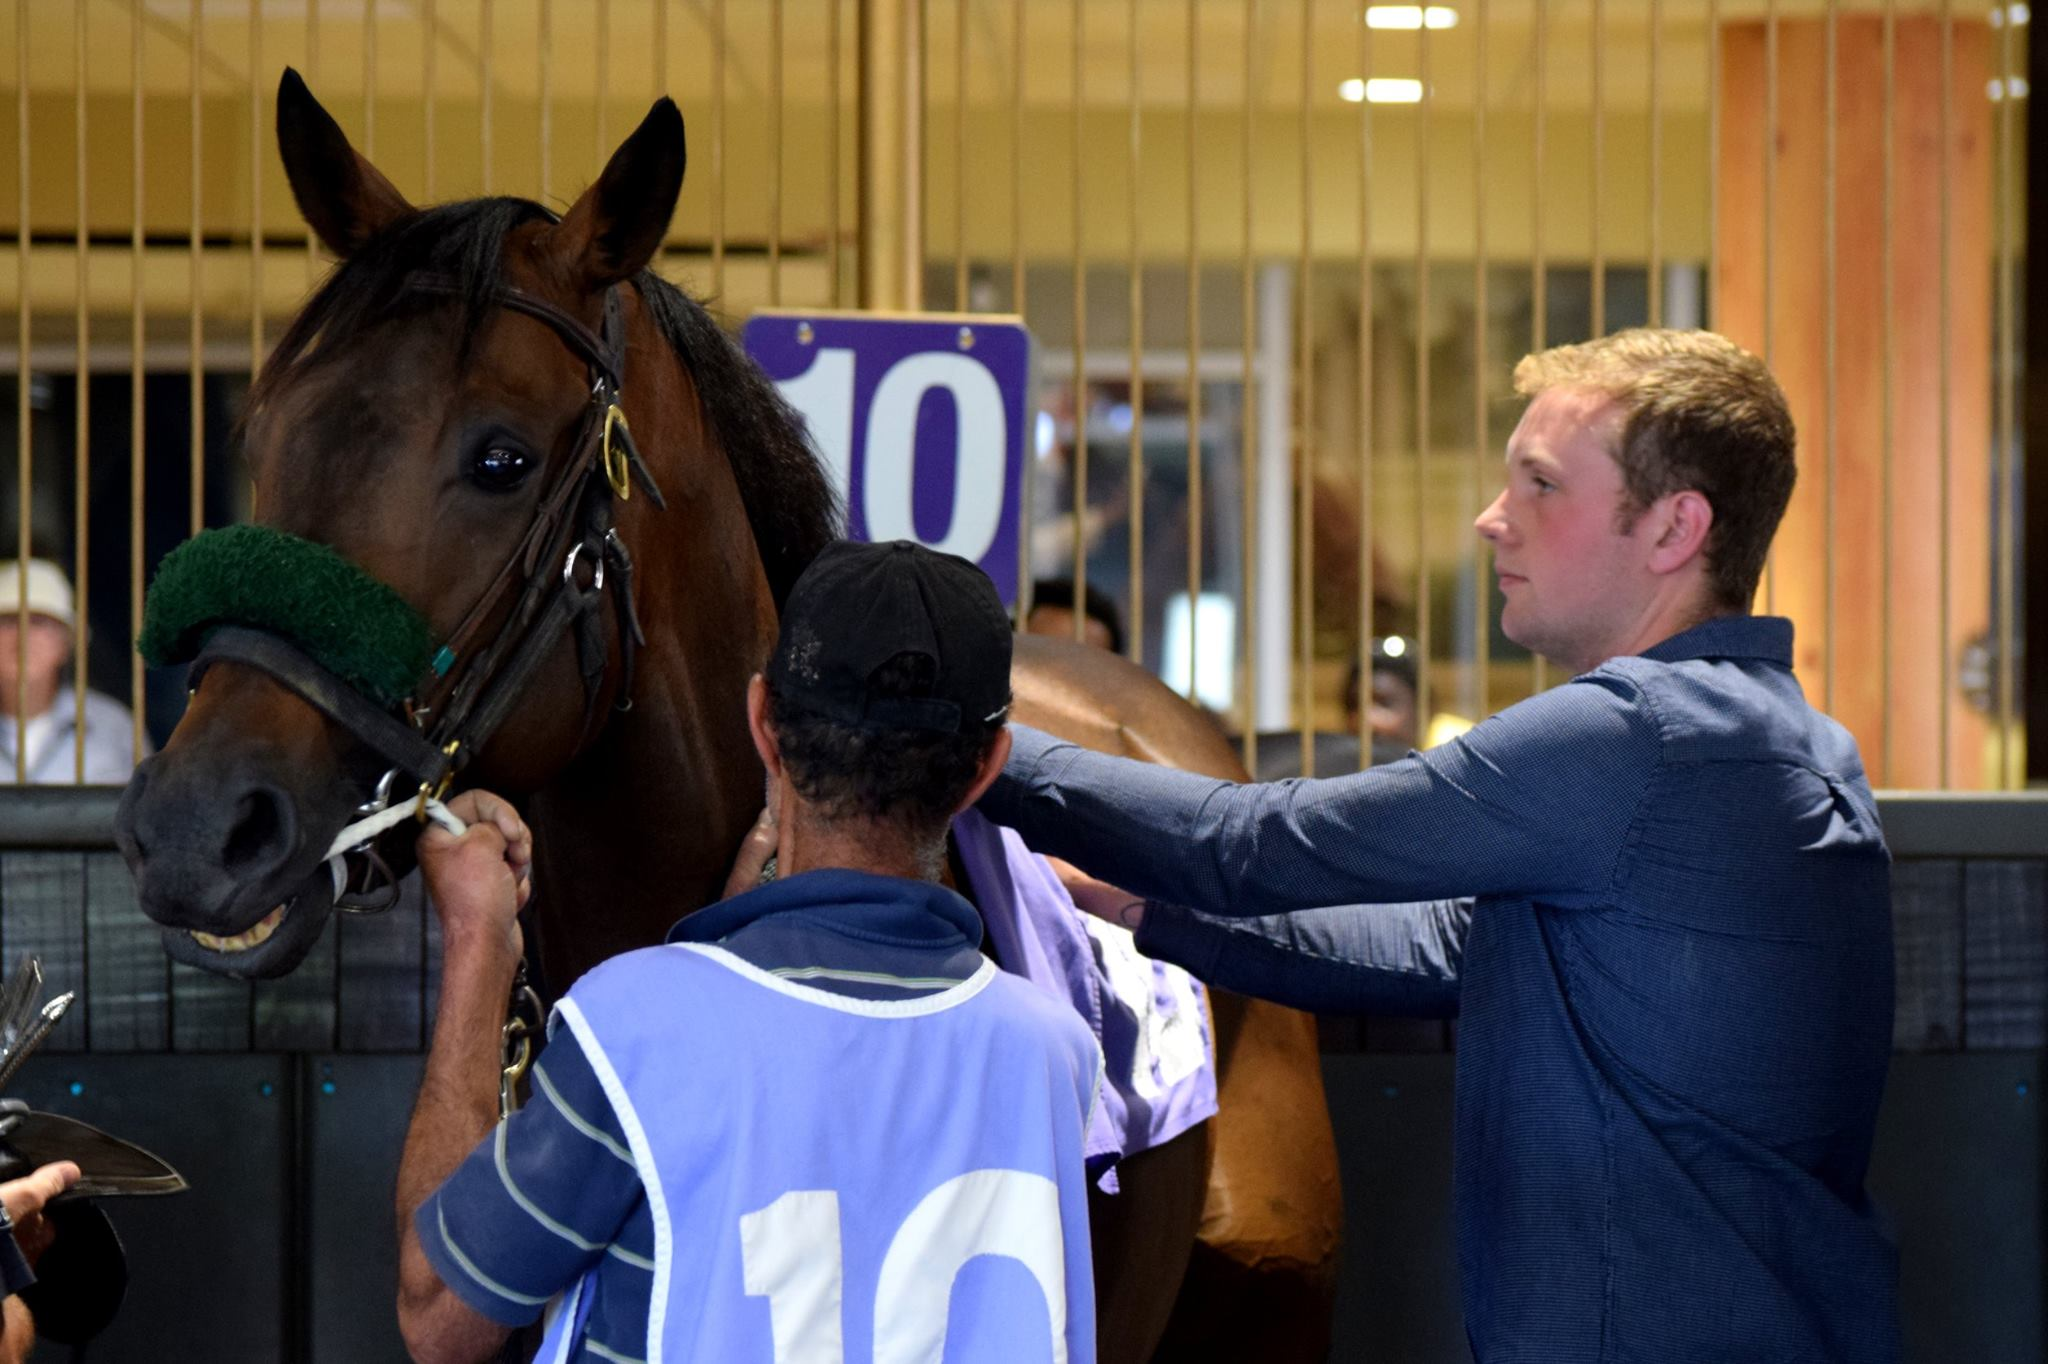 Cole Bennett: Thoroughbred racing's jack-of-all-trades